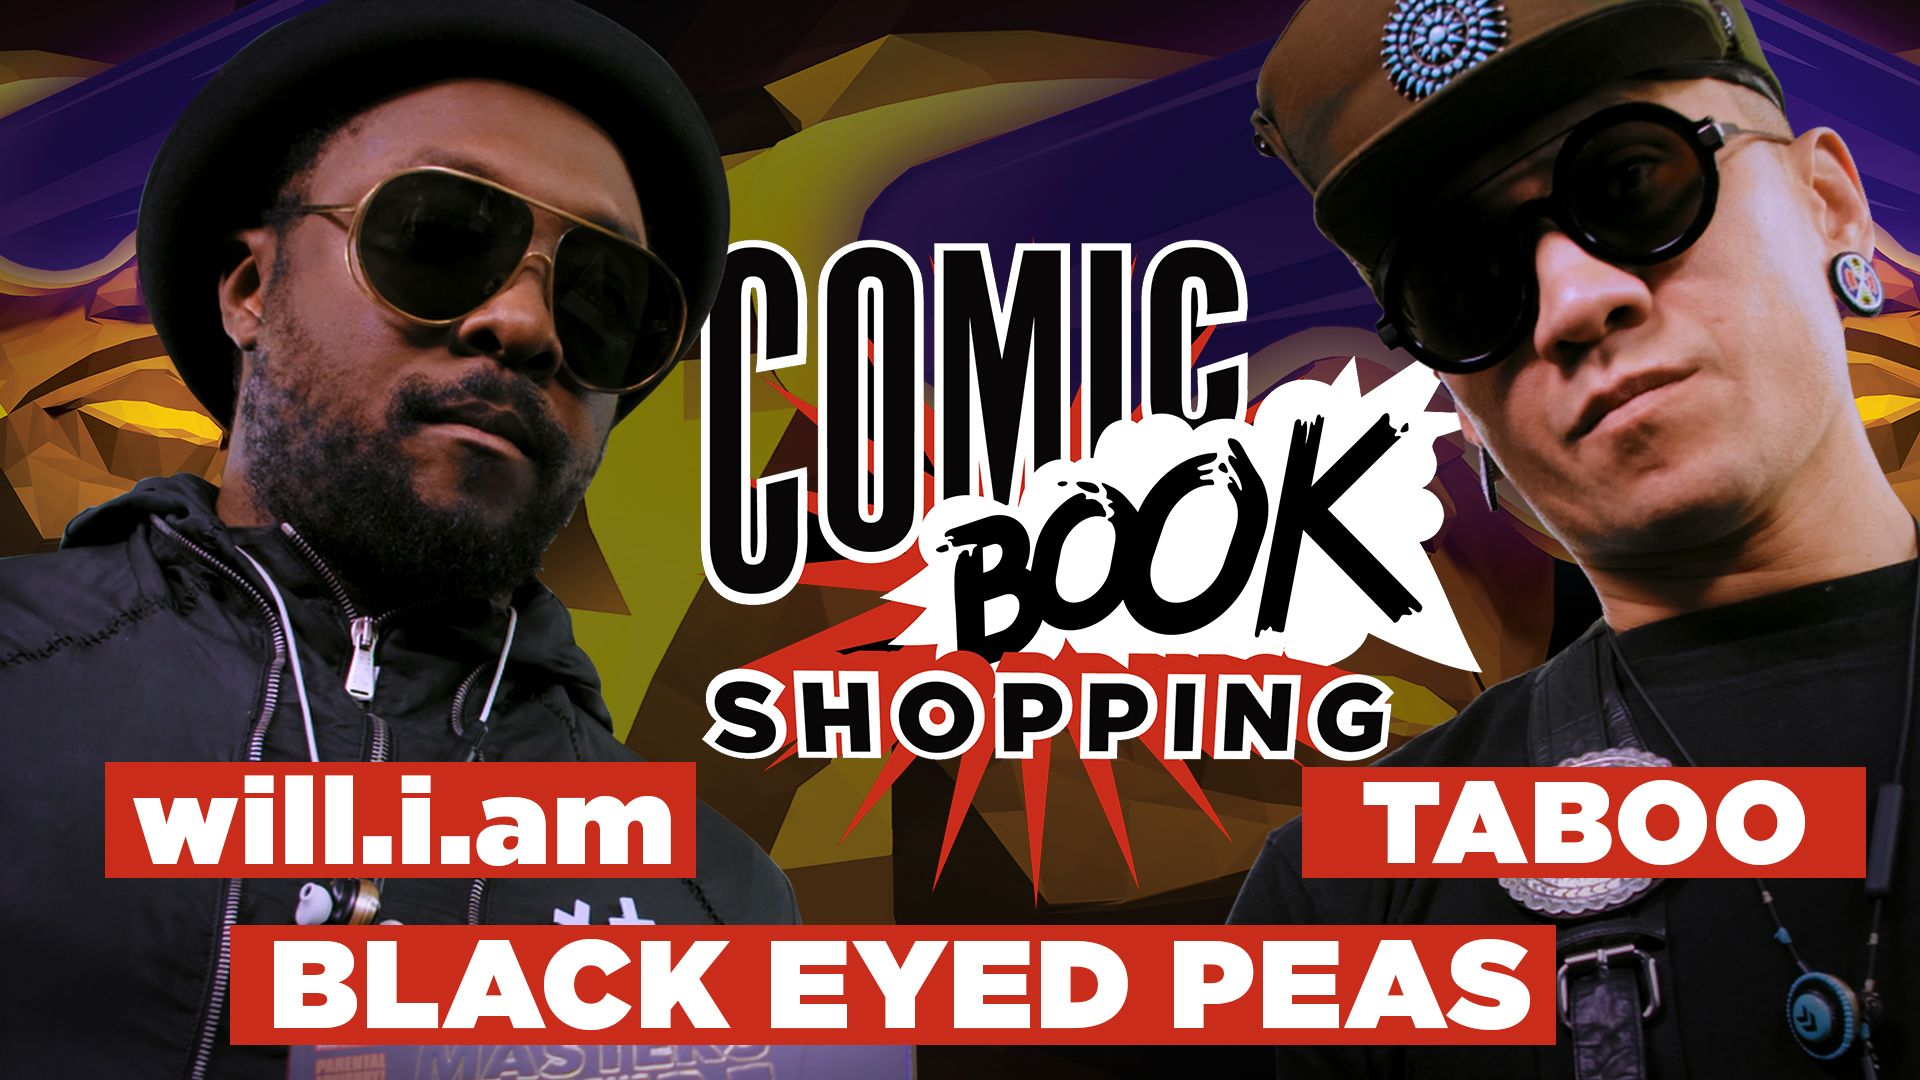 Black Eyed Peas' will.i.am and Taboo Talk Creating Their Own Comic and Go Comic Book Shopping